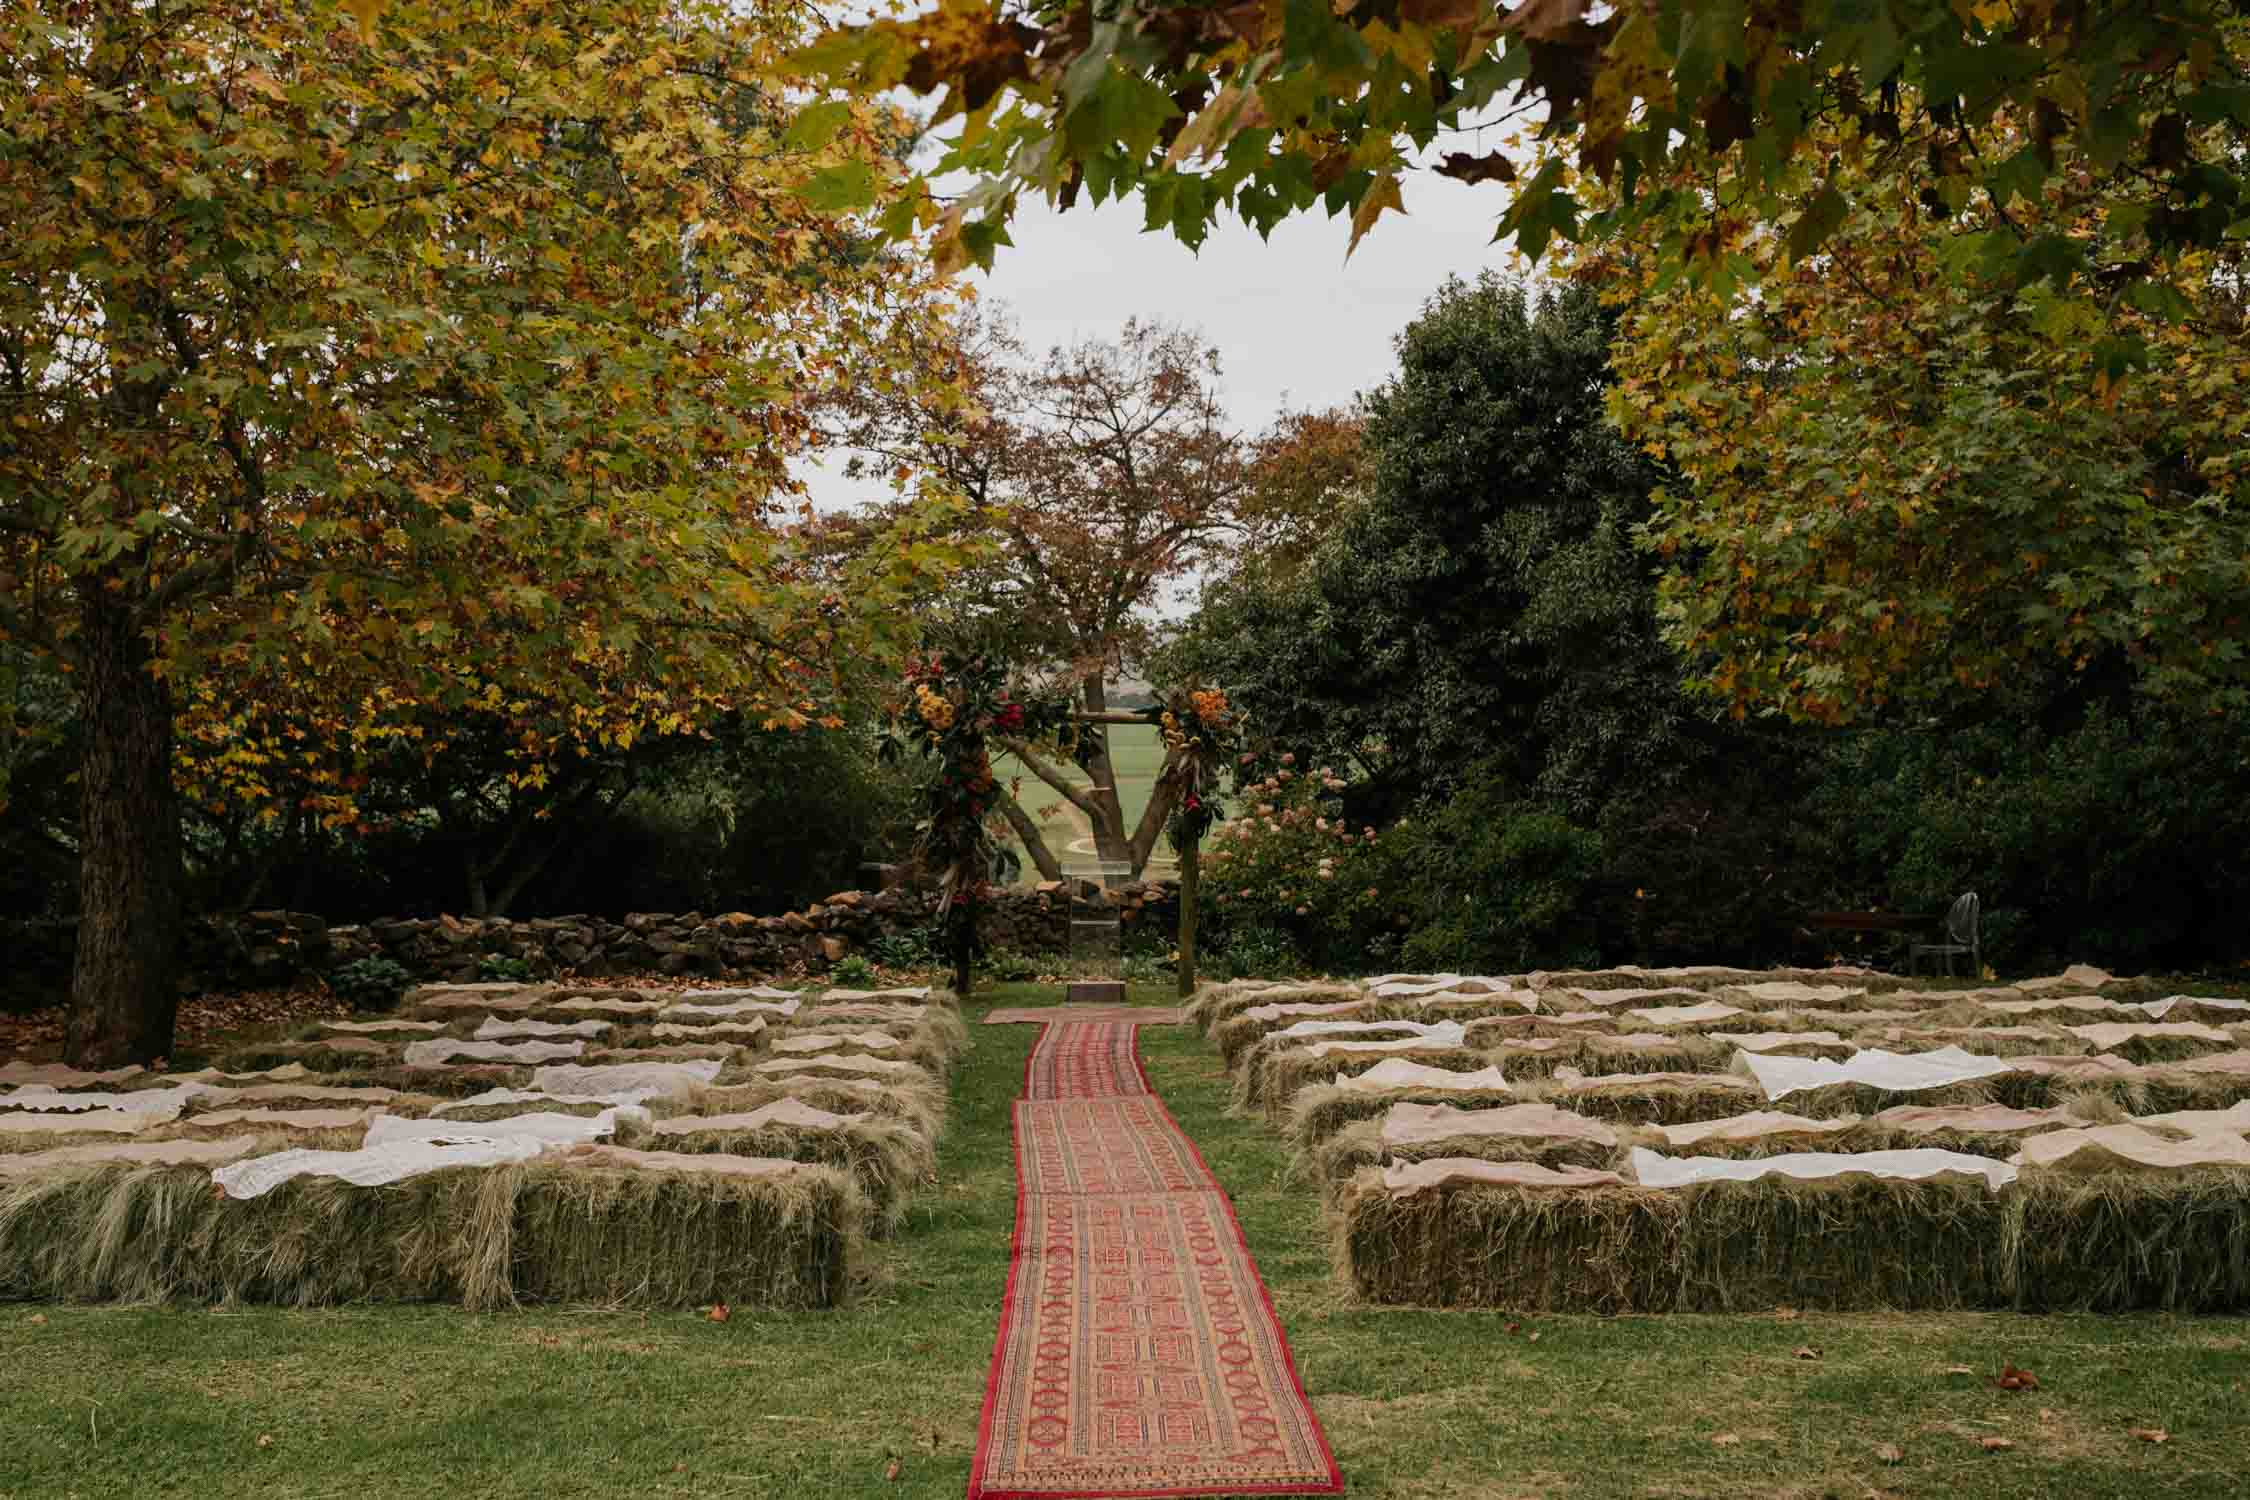 Wedding aisle with red Persian carpet under trees on lawn with hay bales as the chairs on a farm